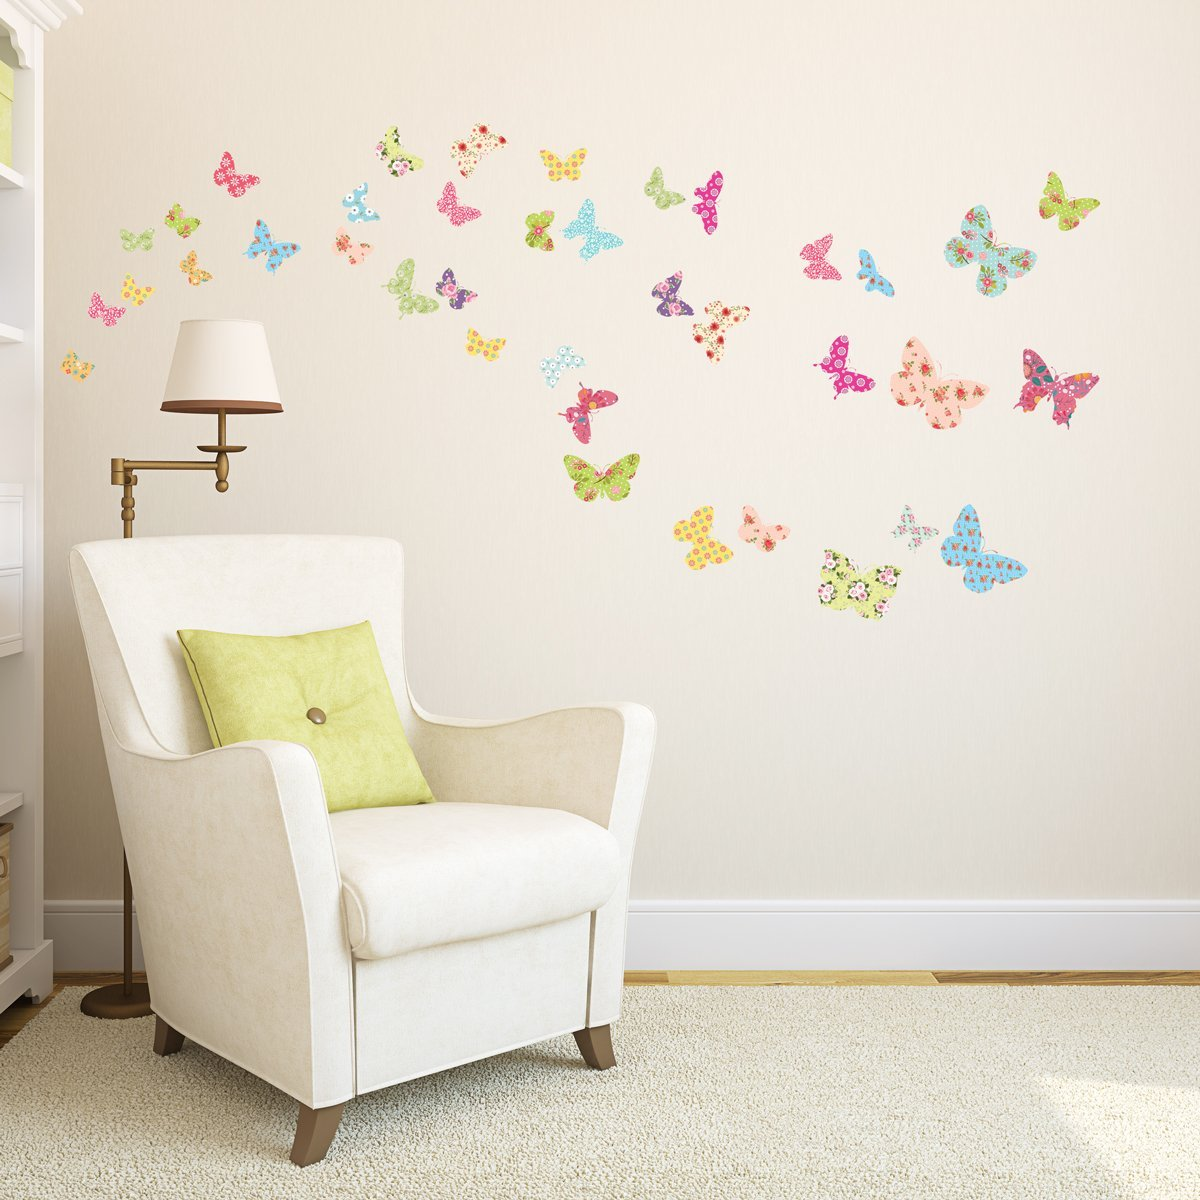 Decowall DW-1408 Patterned Butterflies Kids Wall Decals Wall Stickers Peel and Stick Removable Wall Stickers for Kids Nursery Bedroom...